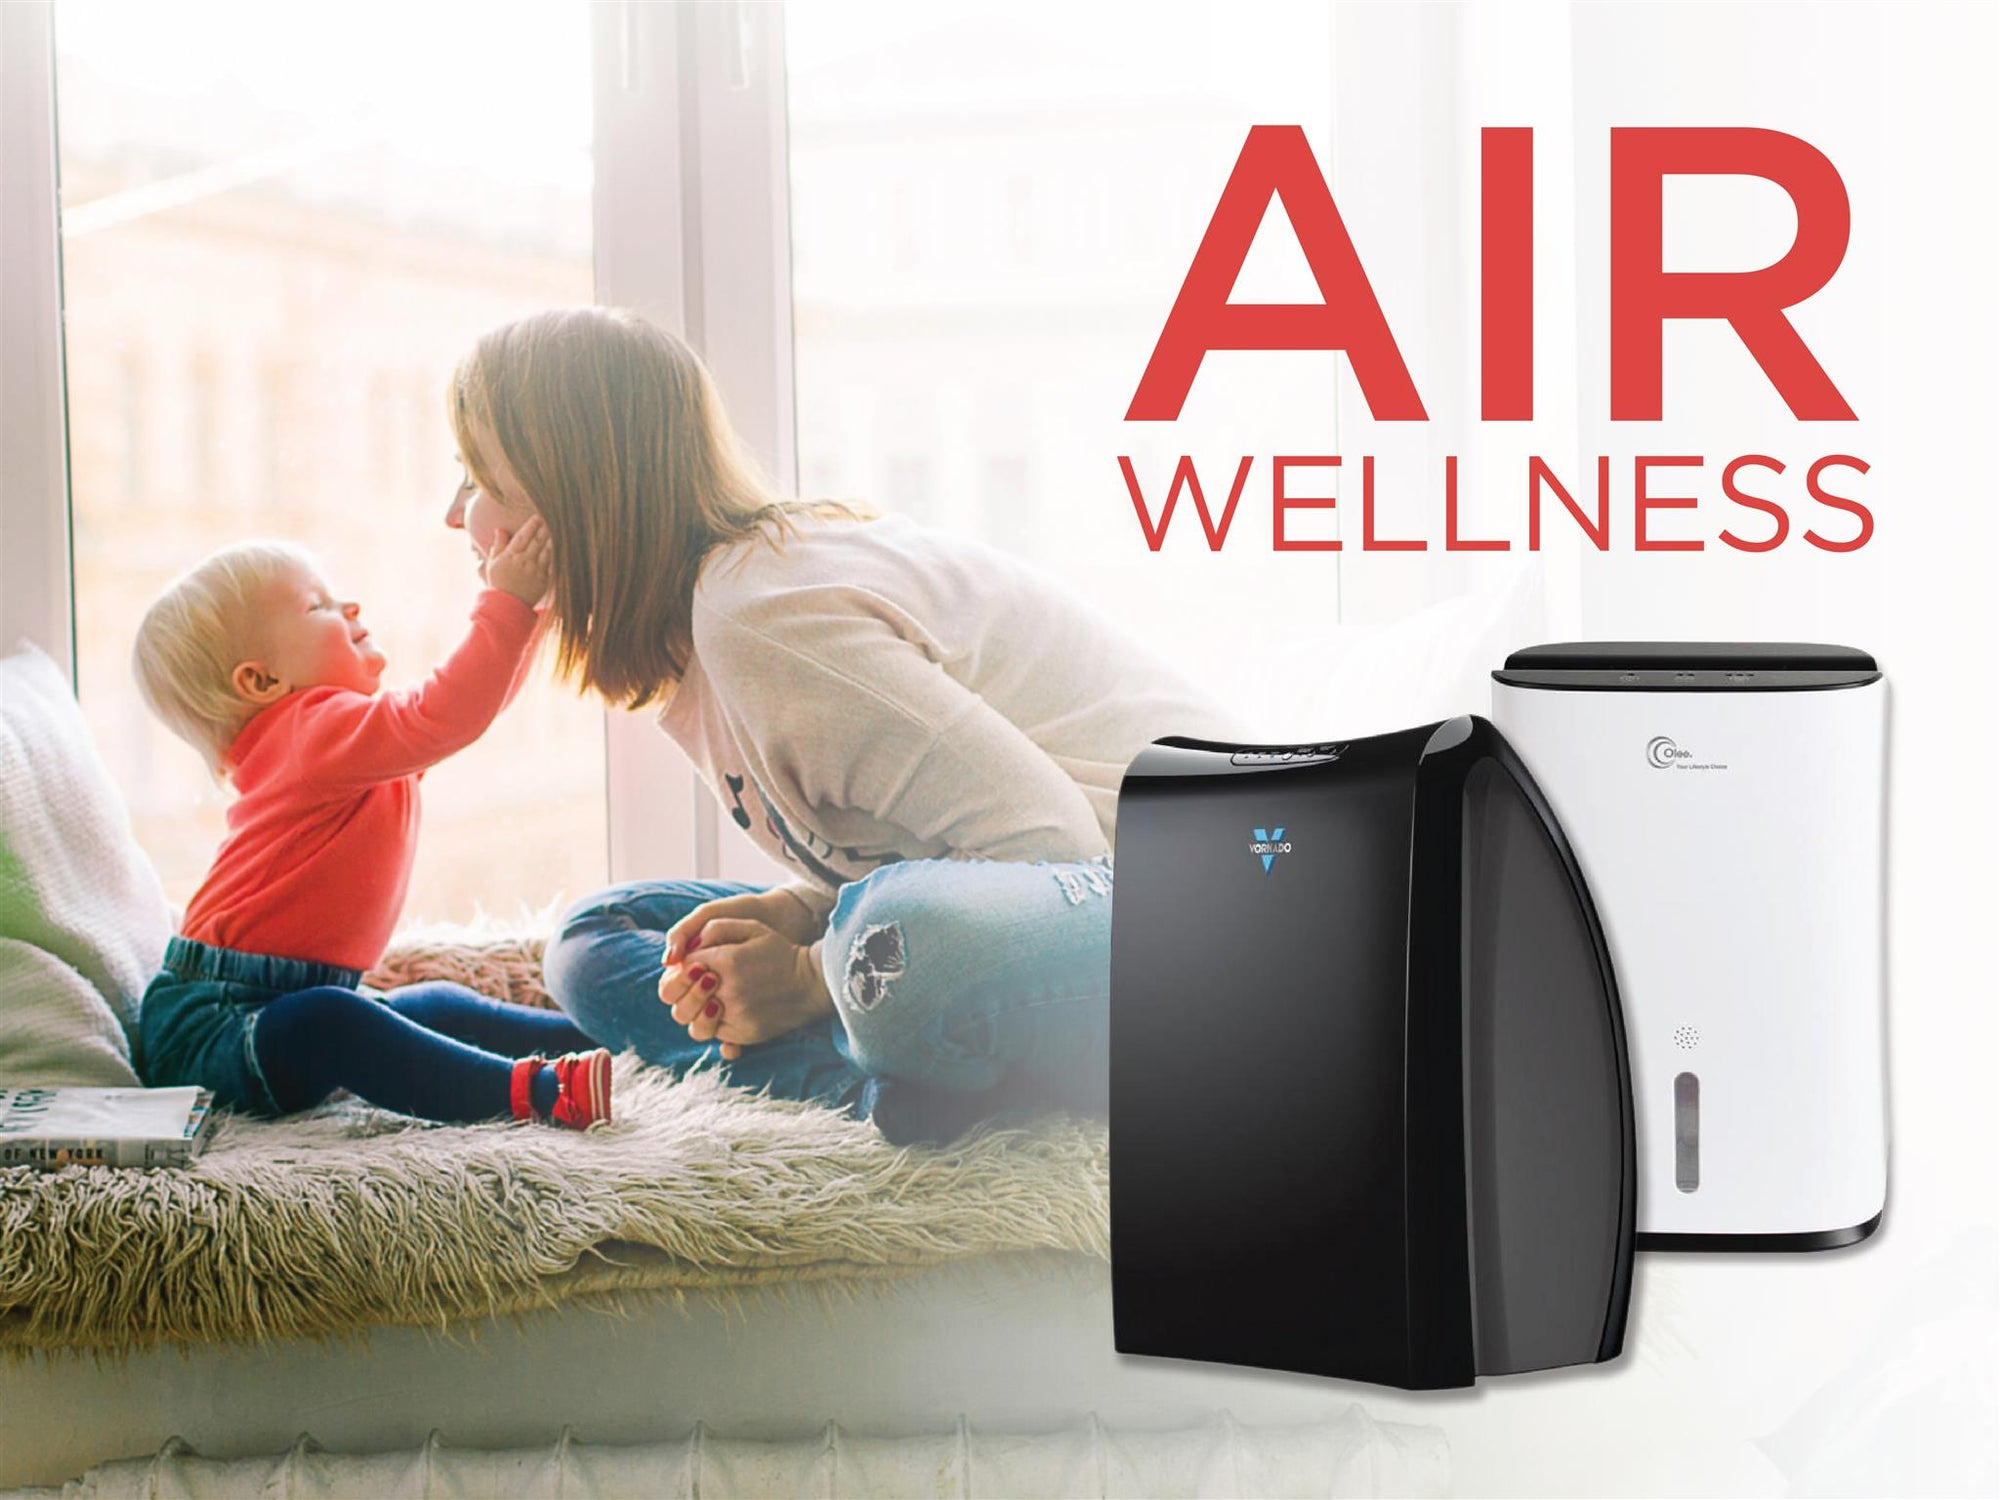 All about air wellness & air quality